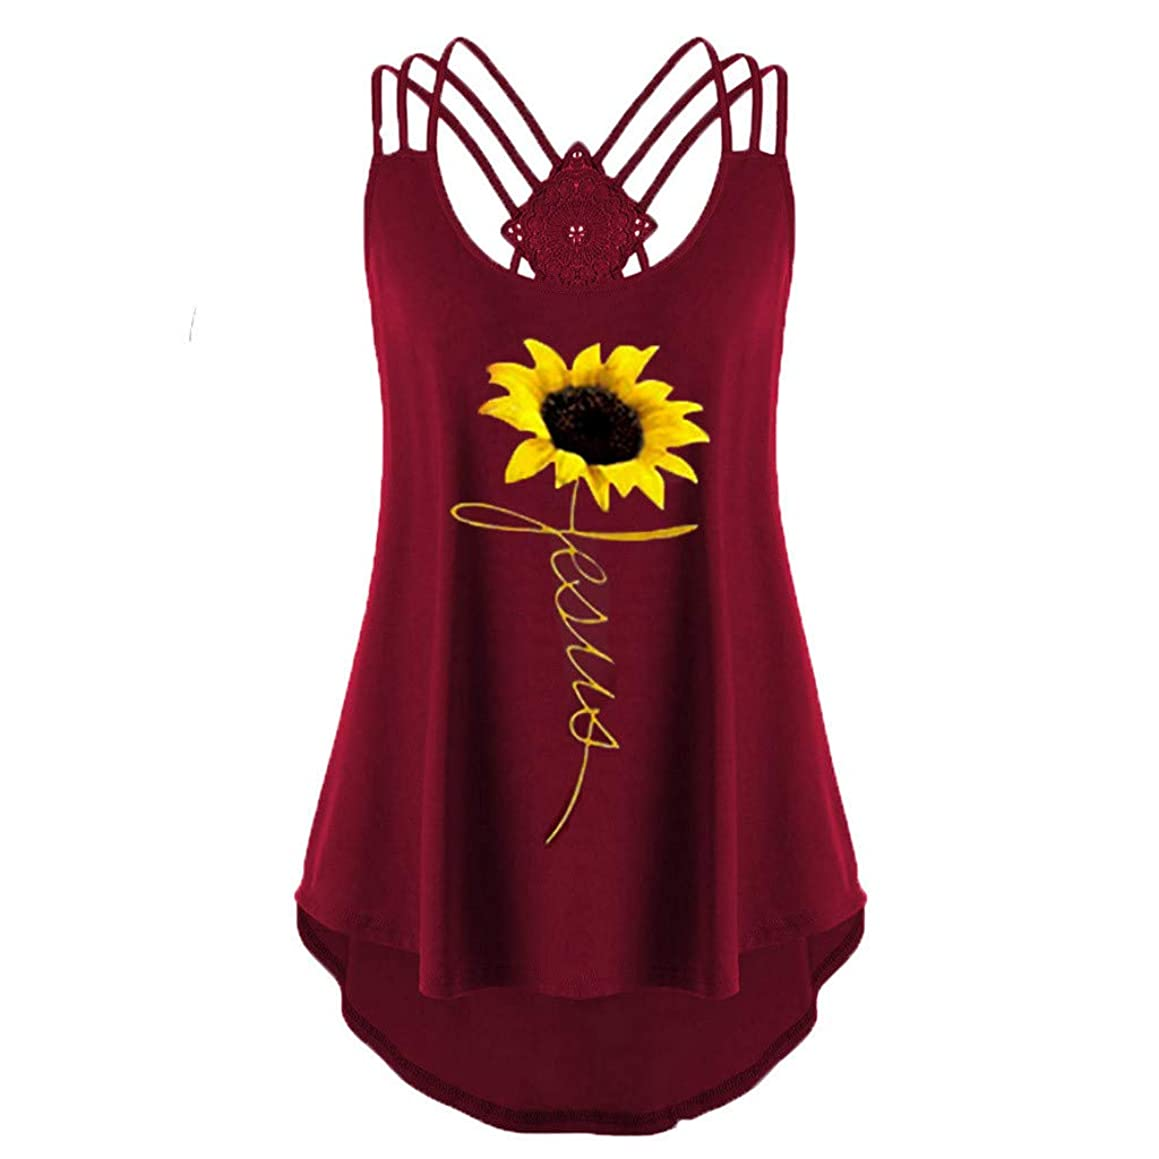 〓COOlCCI〓Womens Casual Sleeveless Sunflower Printed Criss Cross Tank Tops Halter Blouse Tops Vest Camisoles